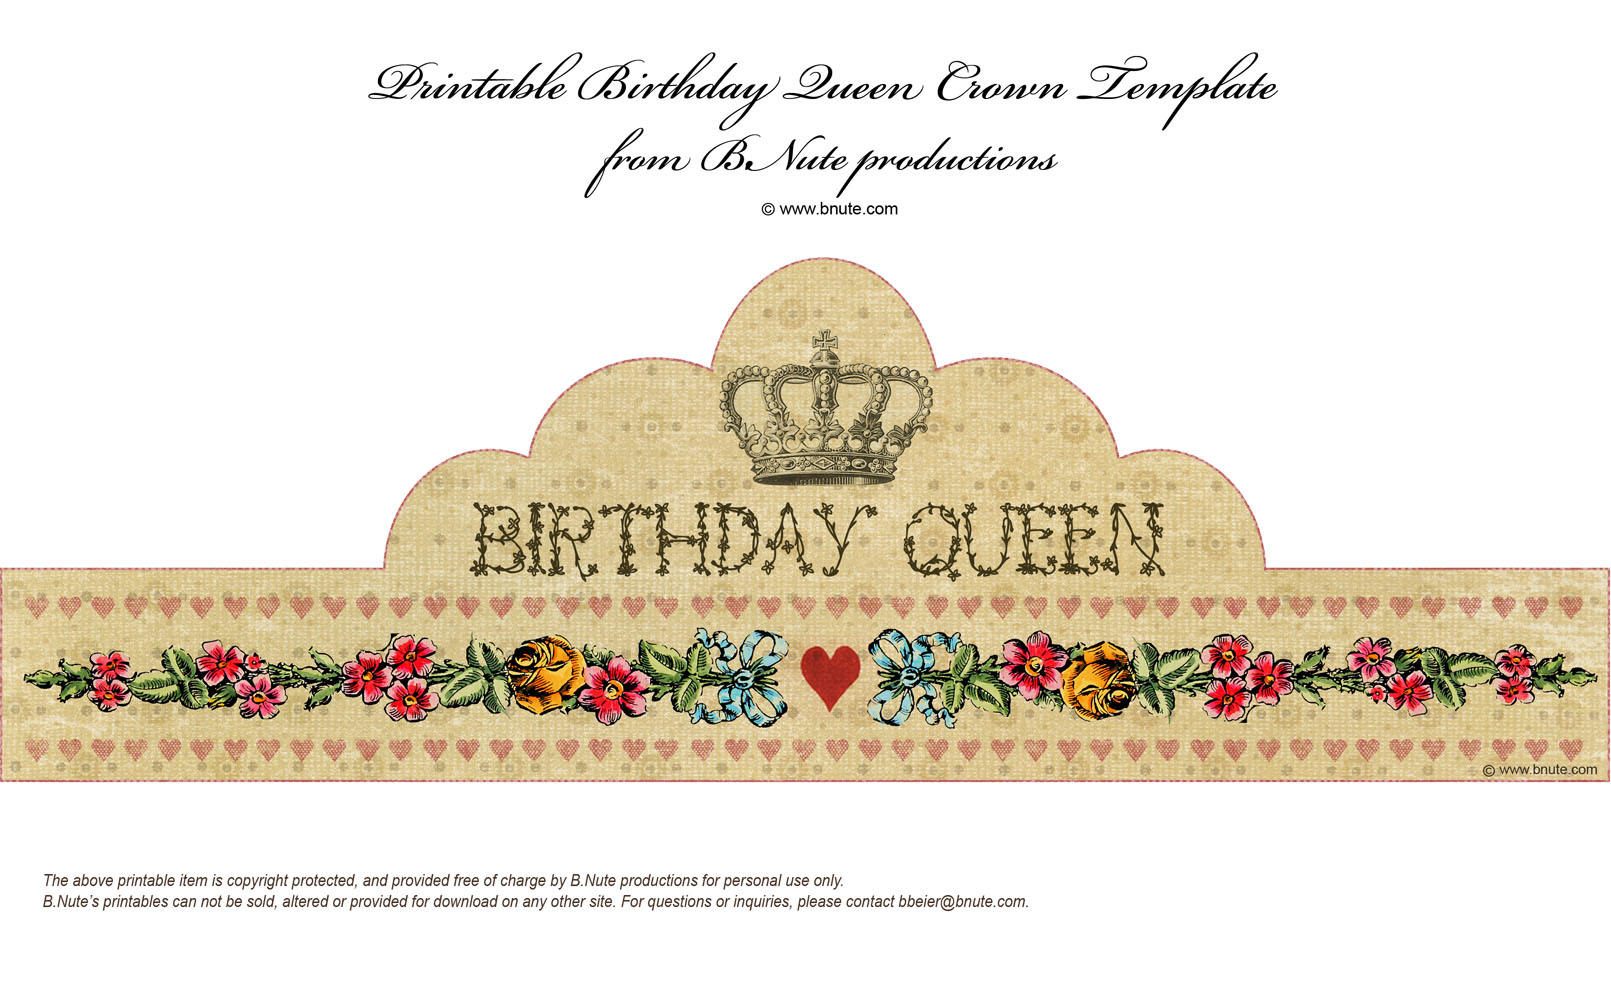 photograph regarding Birthday Crown Printable called bnute productions: Absolutely free Printable Birthday Queen Crown